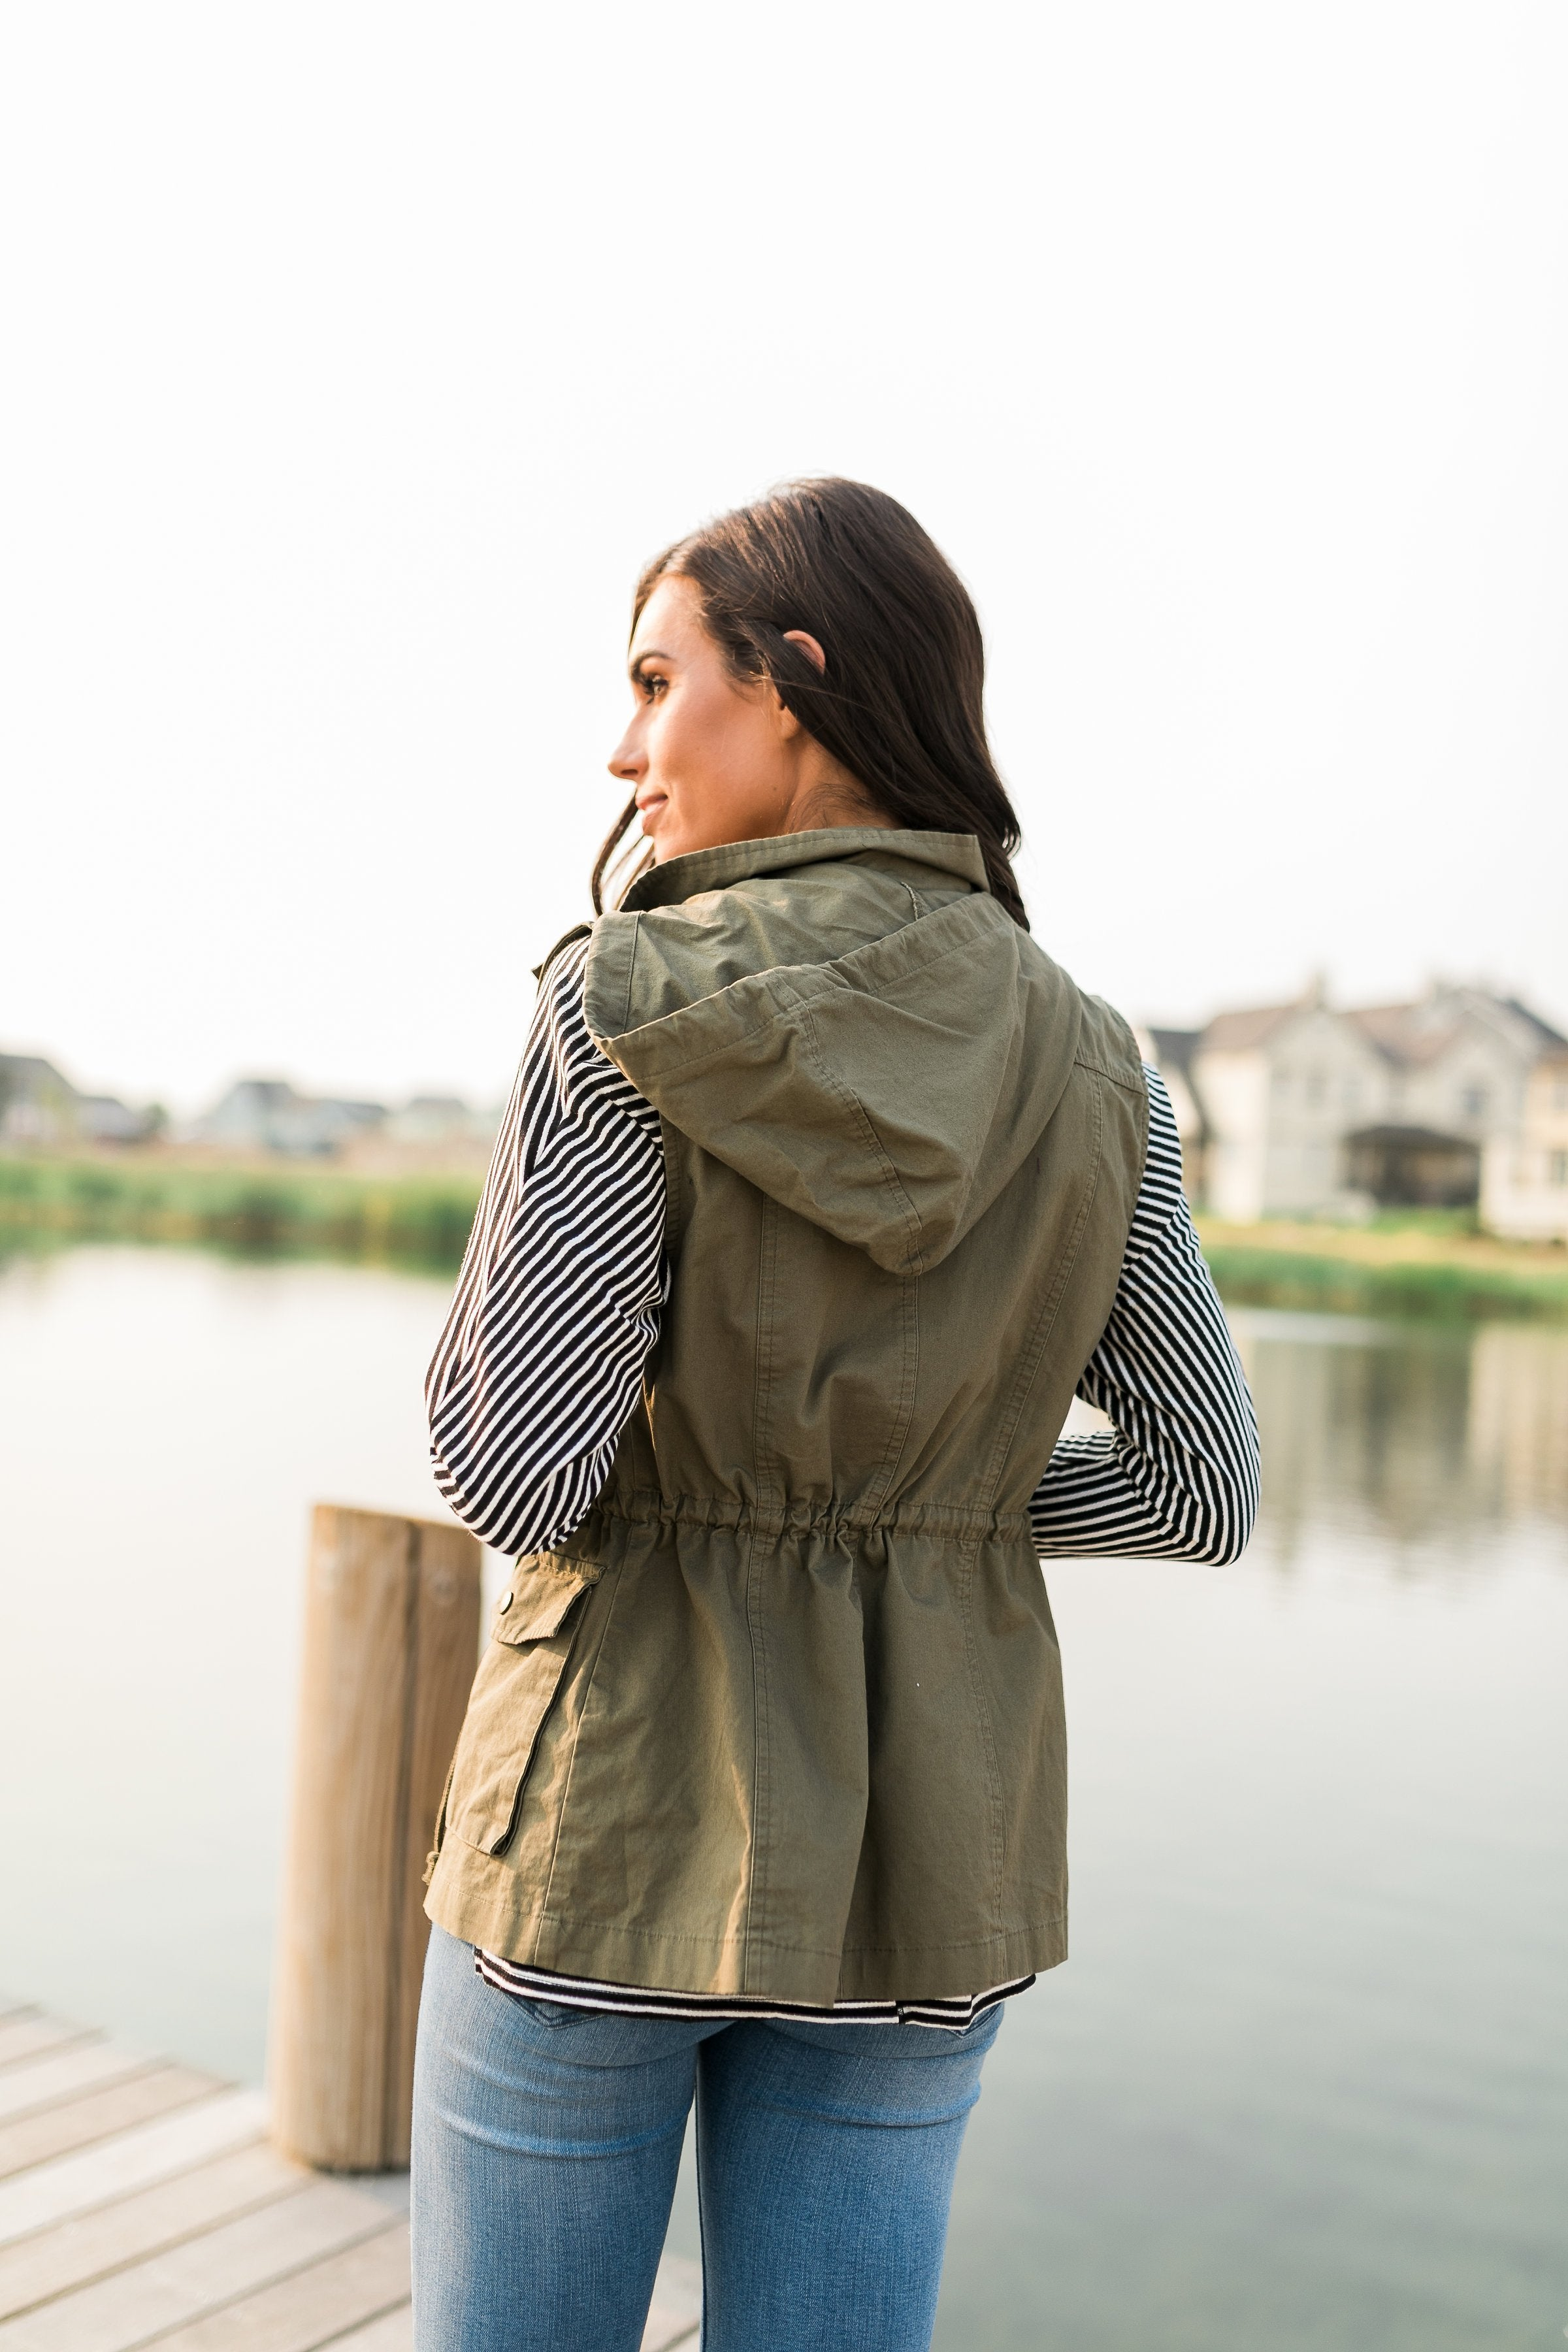 Hooded Camp Vest In Olive - ALL SALES FINAL